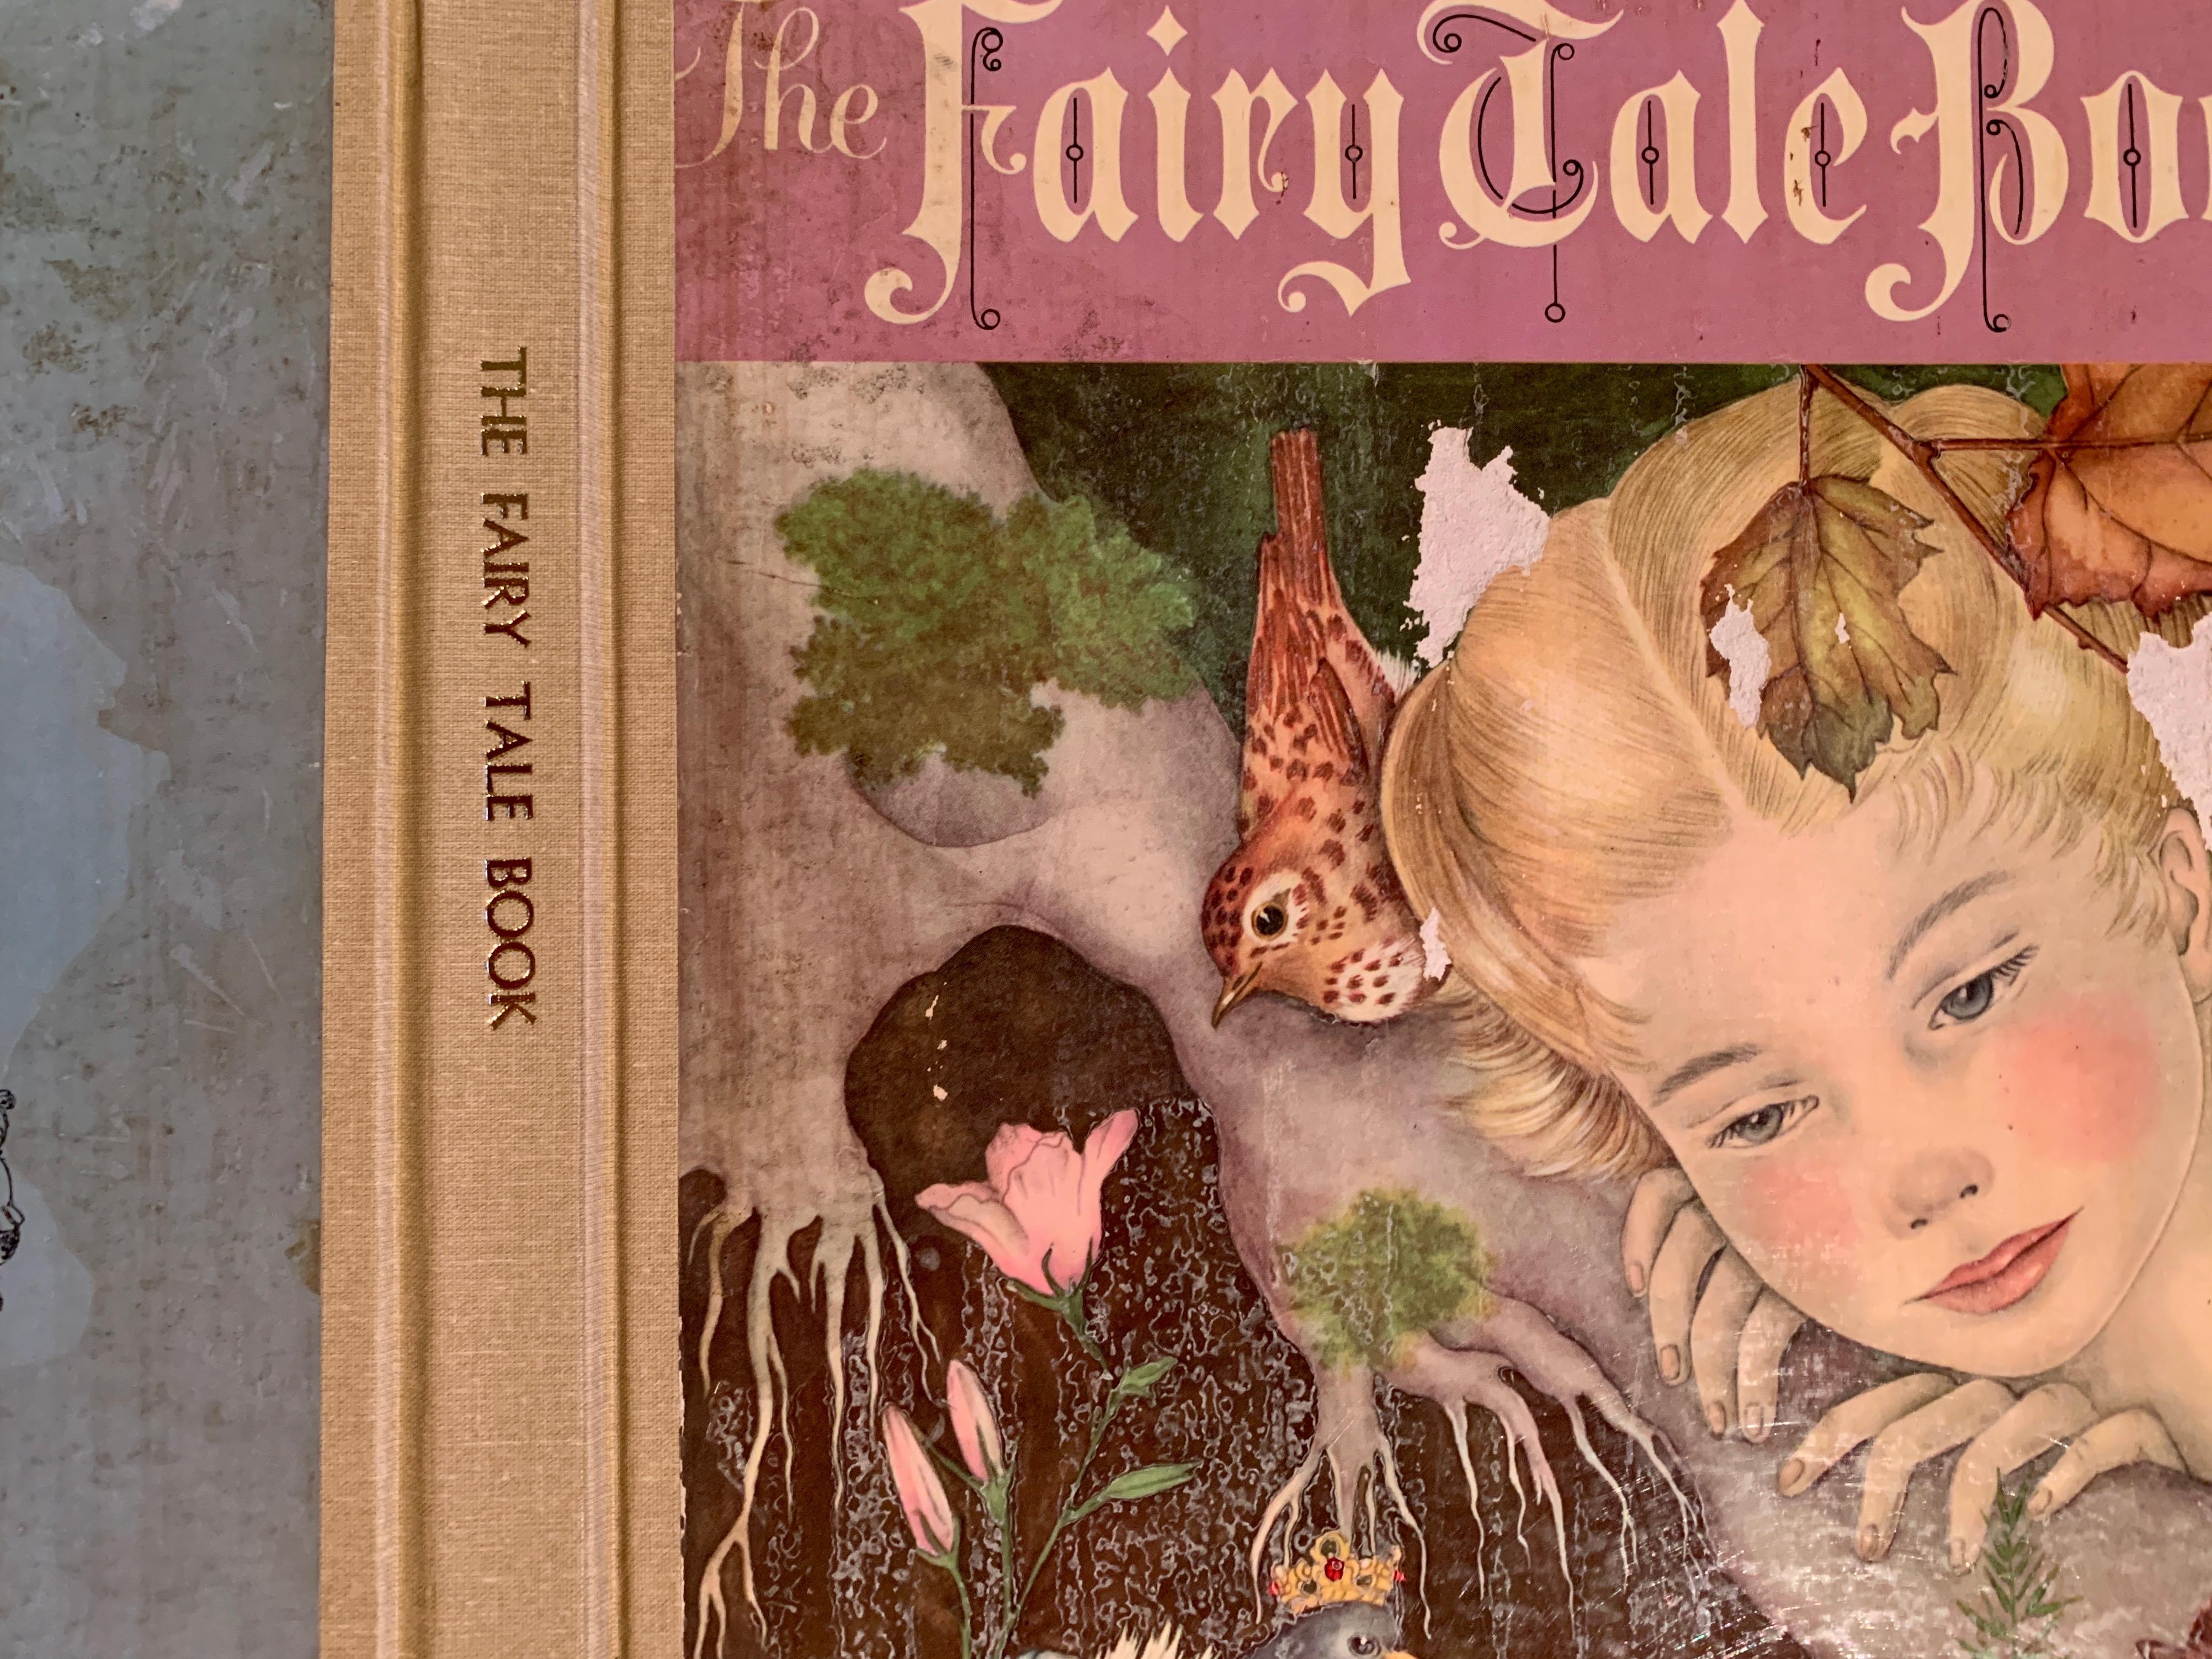 The Fairy Tale Book final gold stamping along its spine